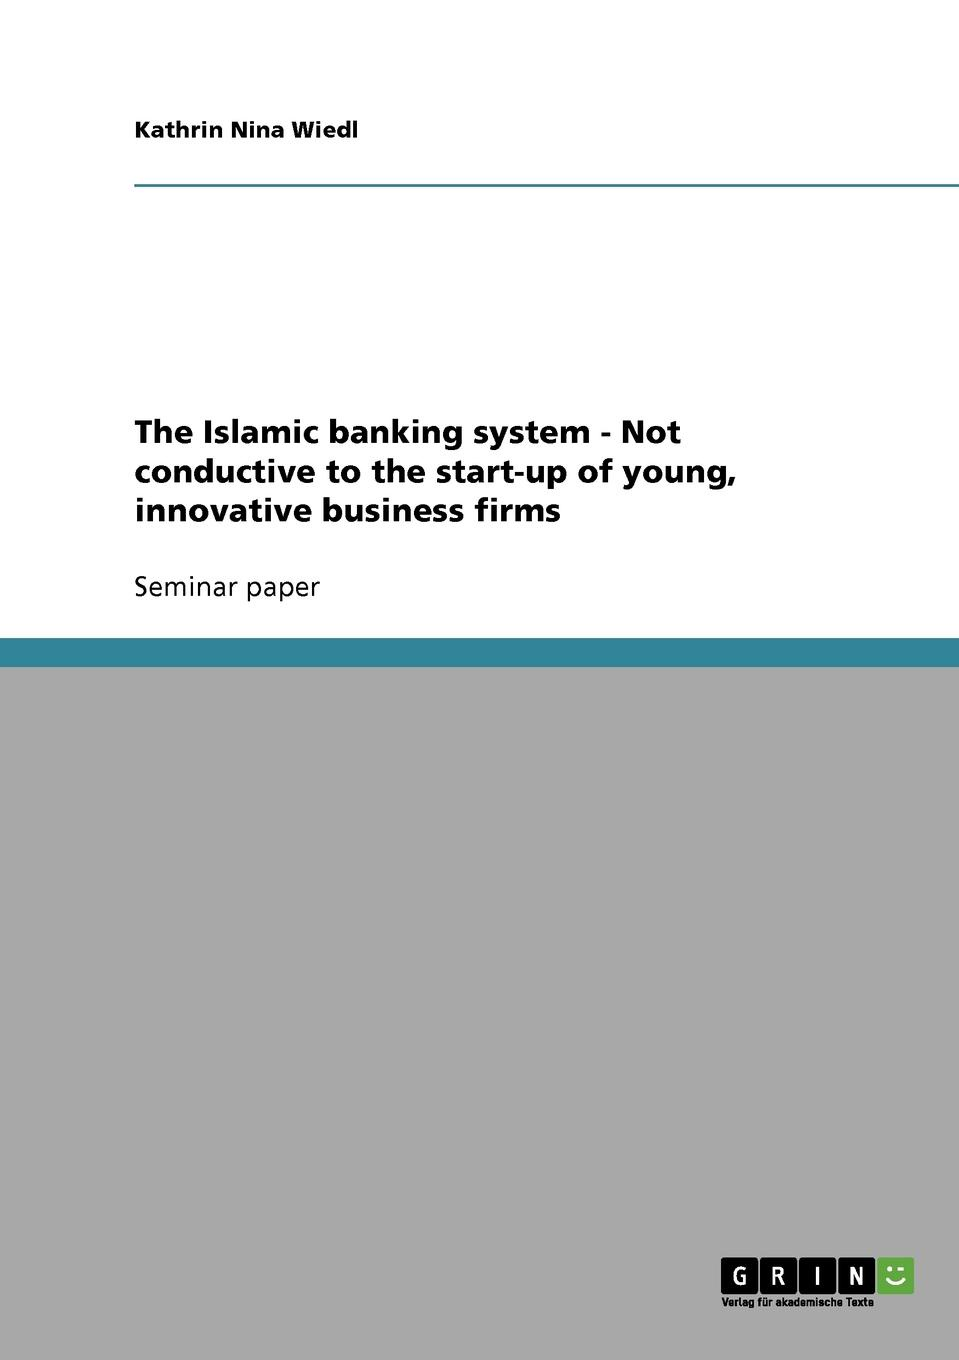 Kathrin Nina Wiedl The Islamic banking system - Not conductive to the start-up of young, innovative business firms недорго, оригинальная цена